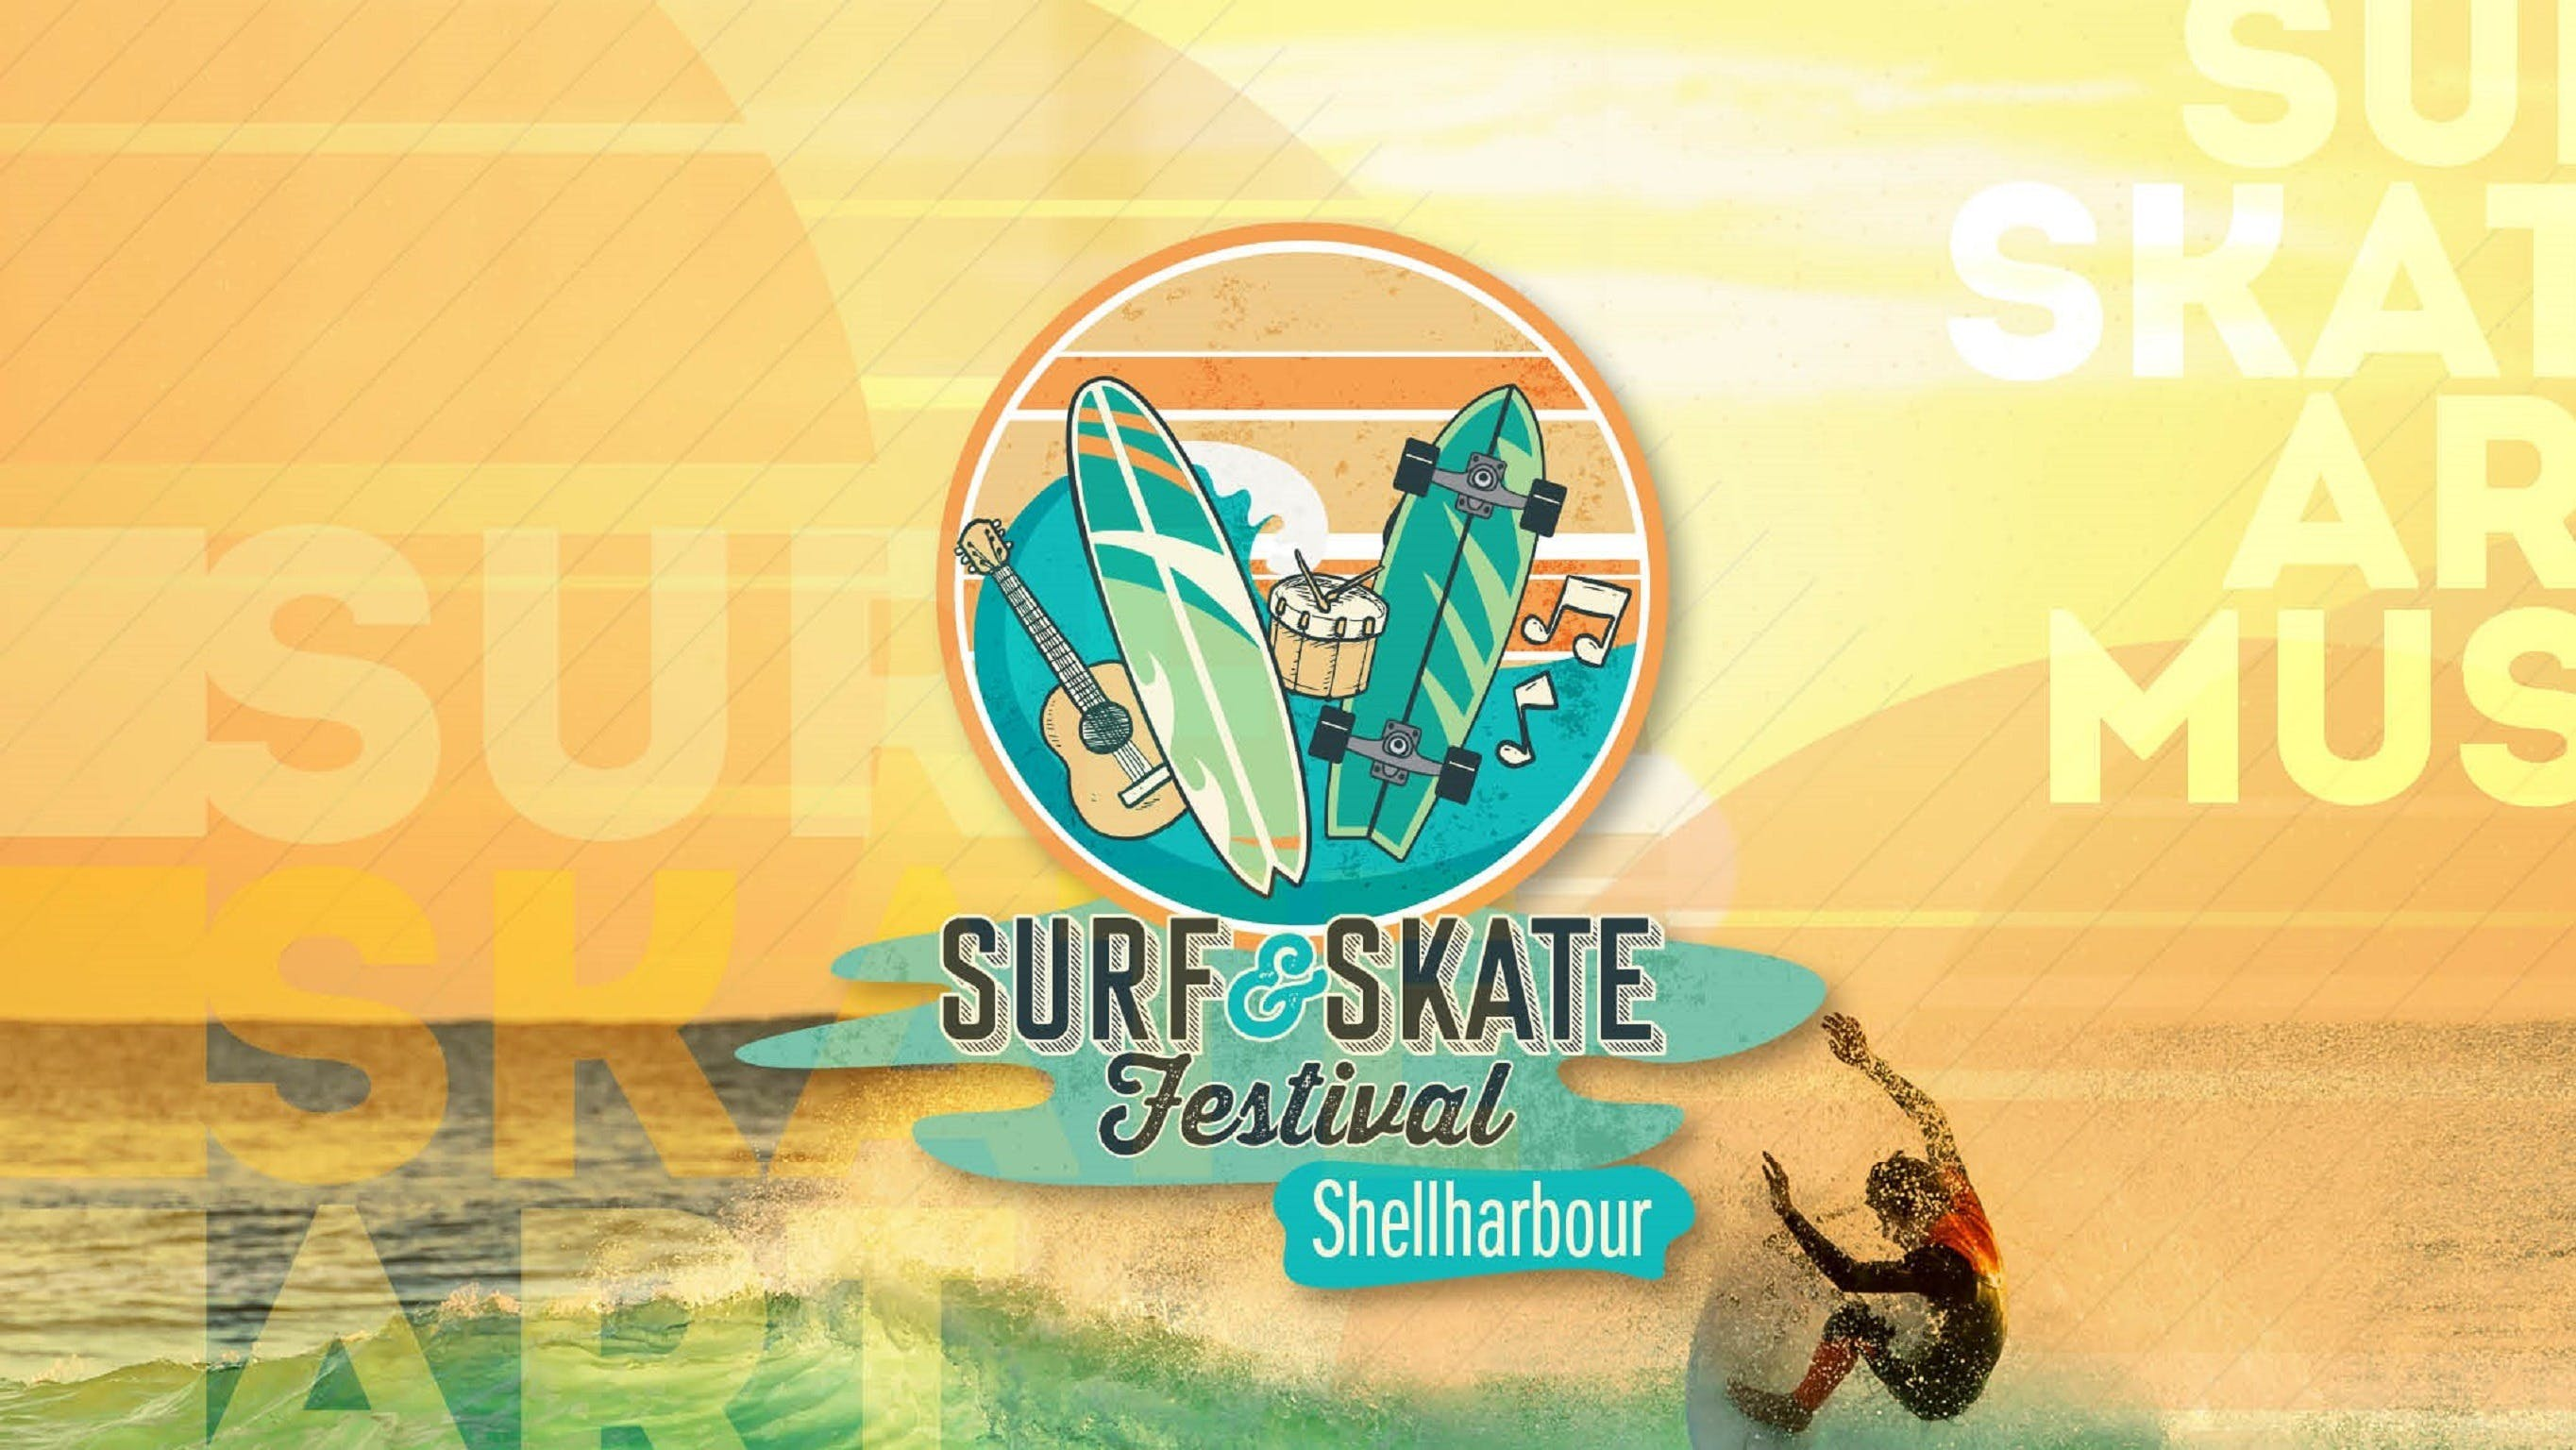 Skate and Surf Festival Shellharbour - ACT Tourism